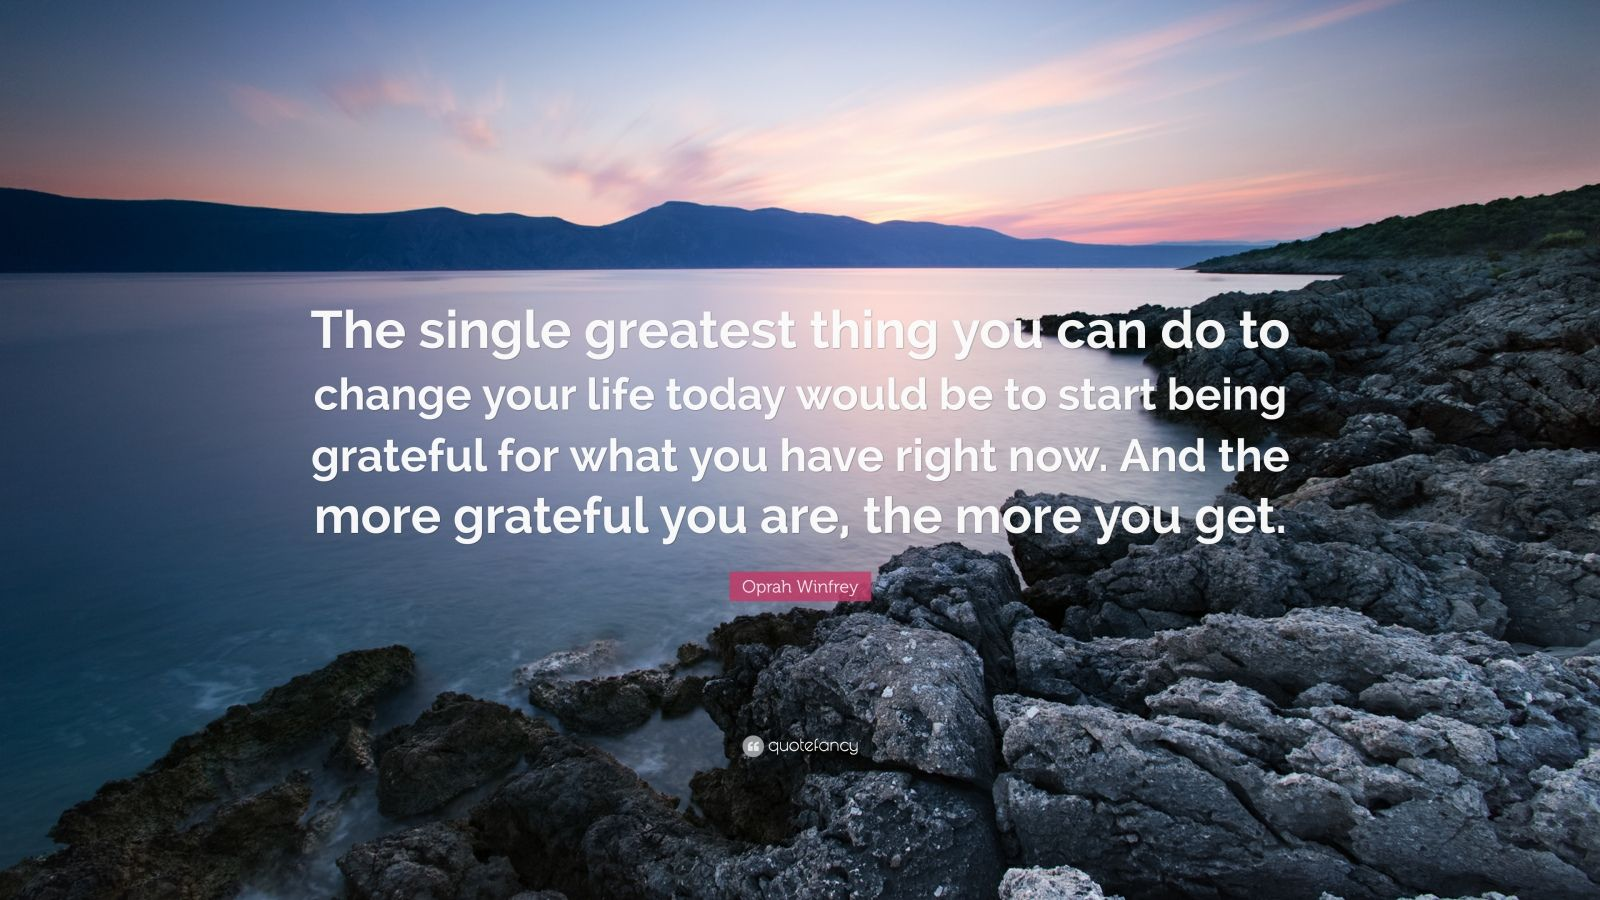 """Oprah Winfrey Quote: """"The single greatest thing you can do to change your life today would be to start being grateful for what you have right now. And the more grateful you are, the more you get."""""""